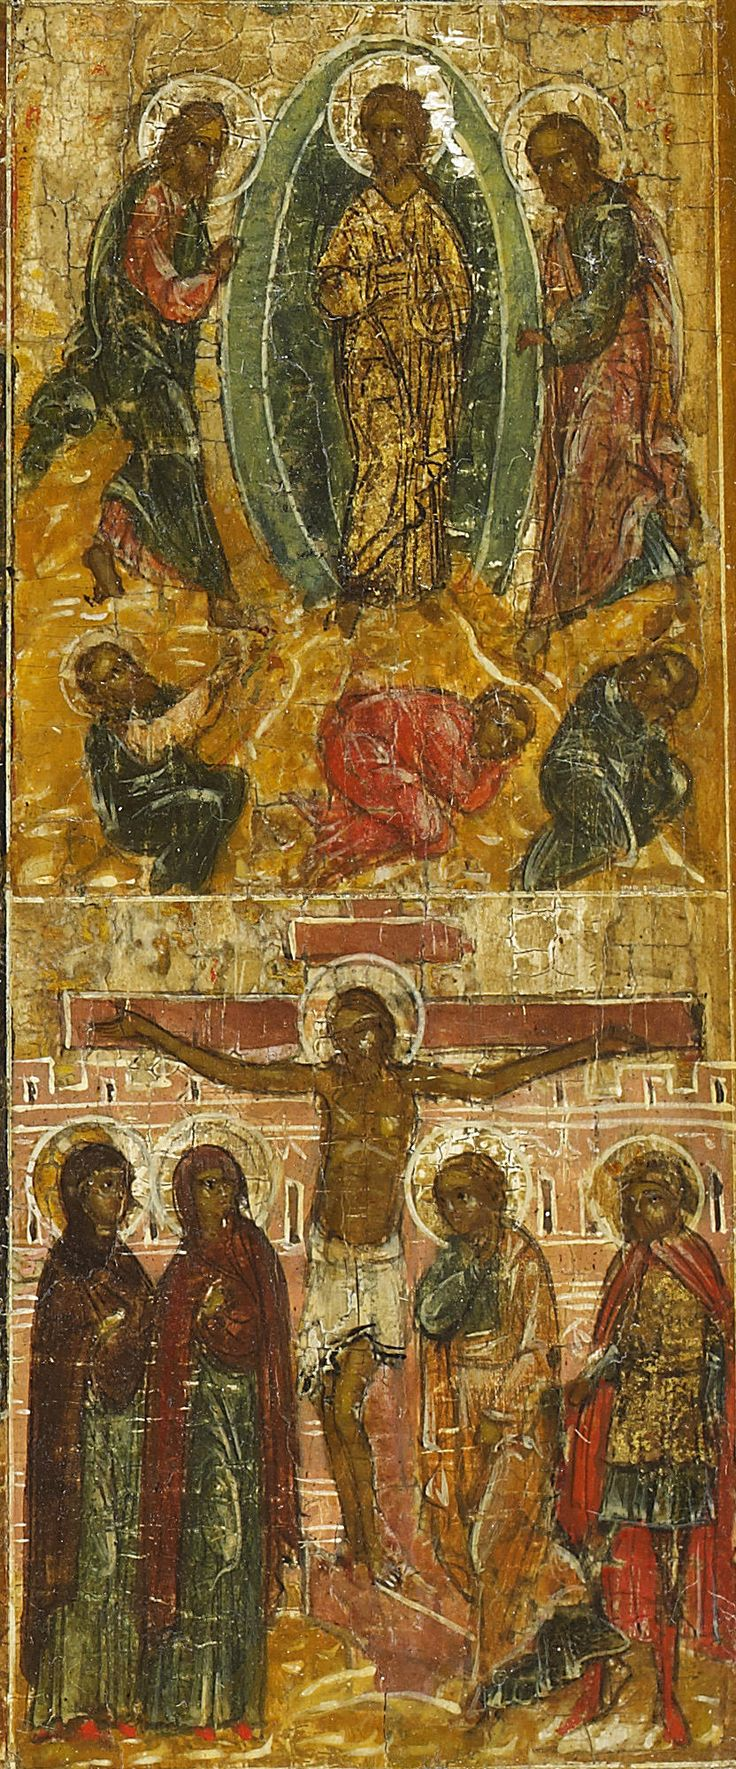 Detailed view: E035. Standing Christ of Smolensk with 12 Feasts- exhibited at the Temple Gallery, specialists in Russian icons